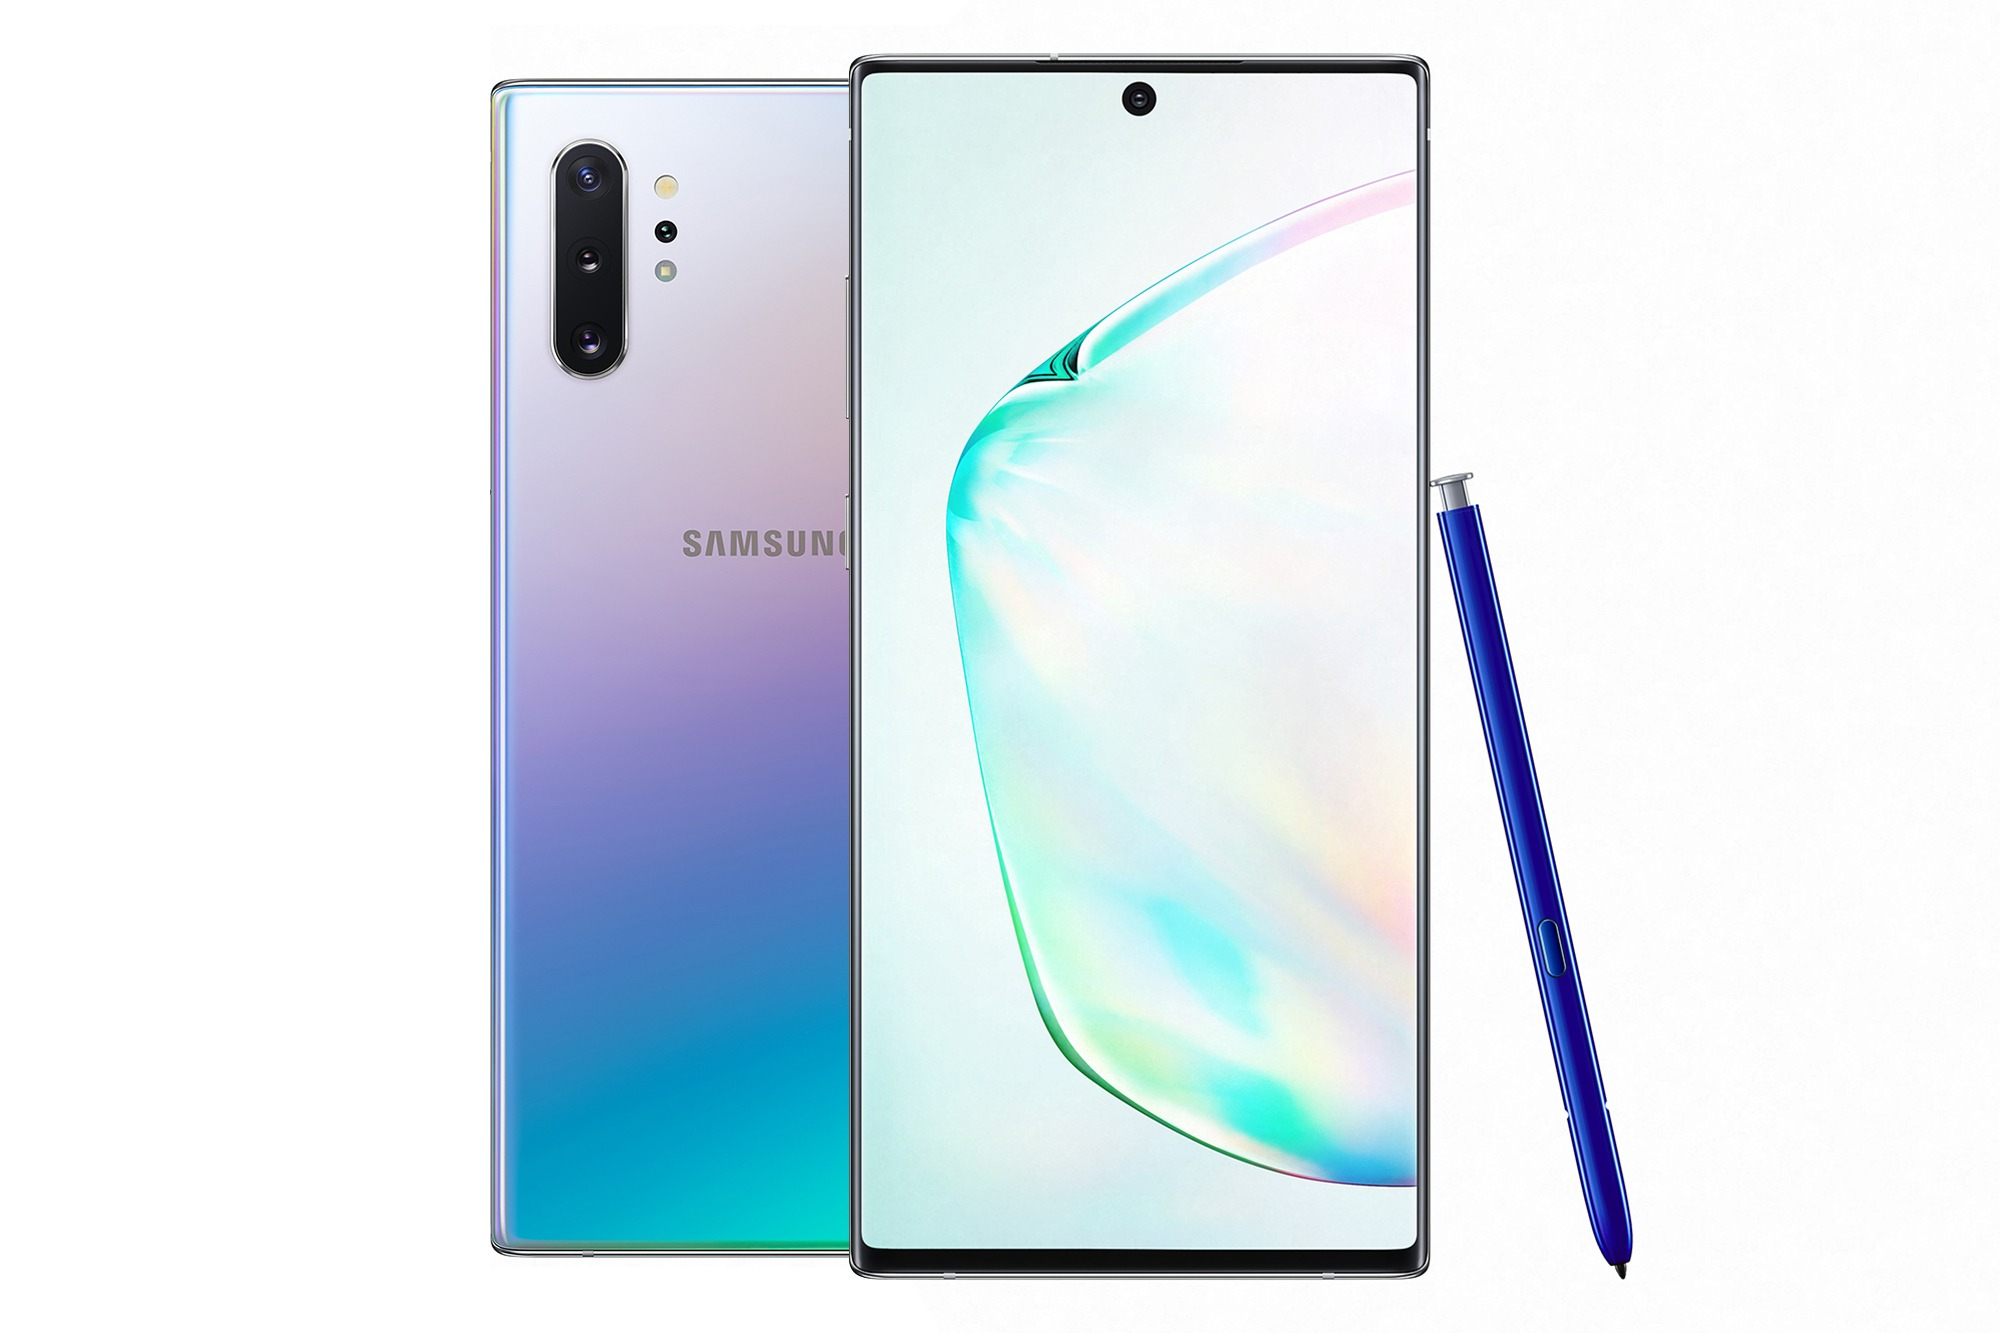 Samsung Galaxy Note 10 & Note 10+ are now official